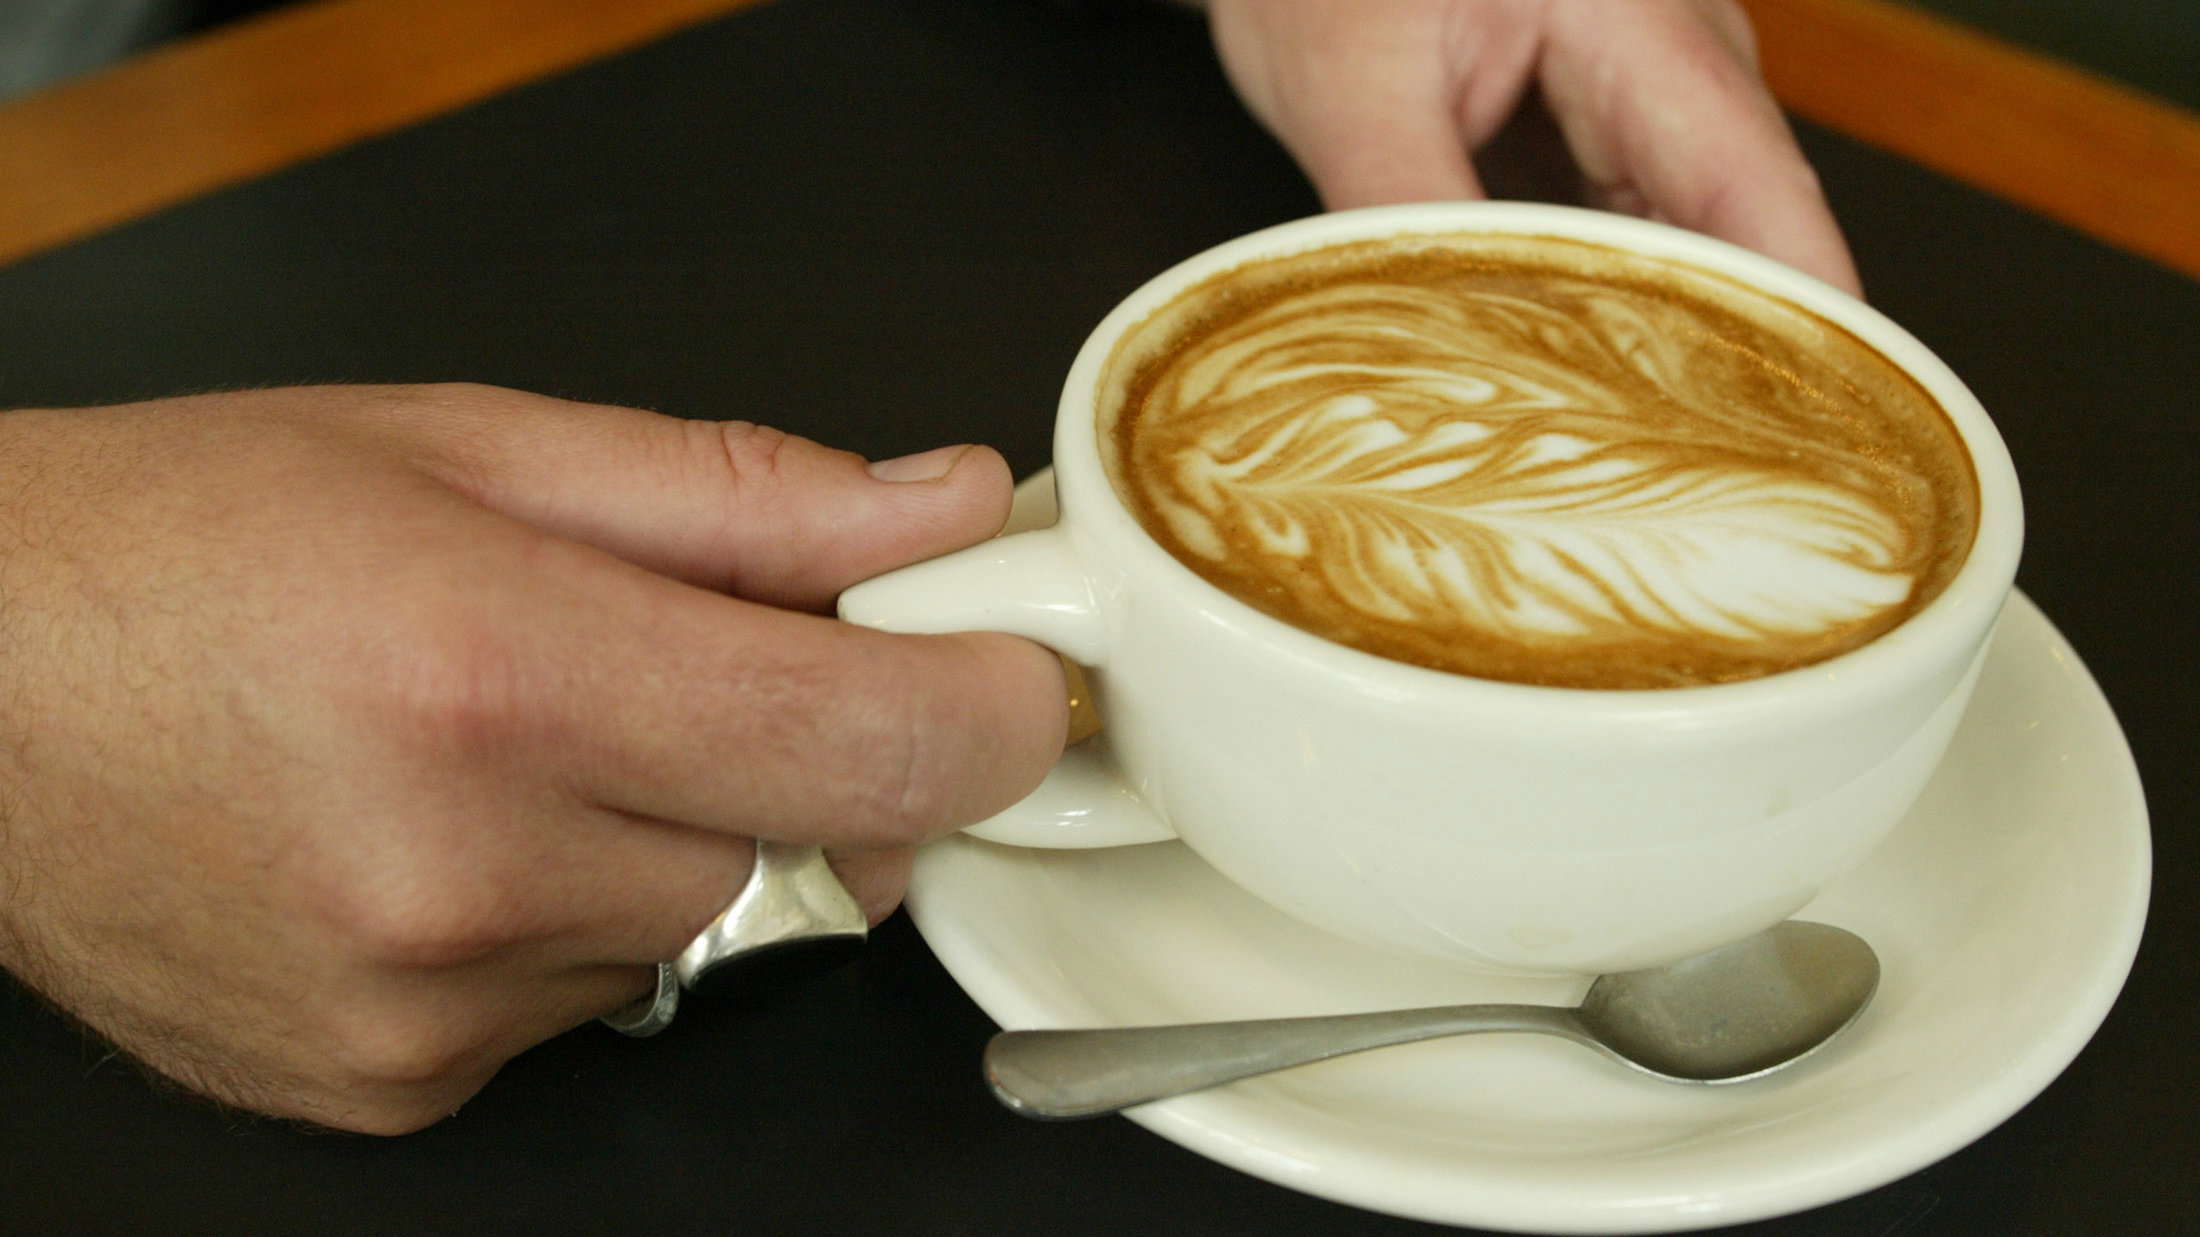 Your liver might thank you for your daily coffee.